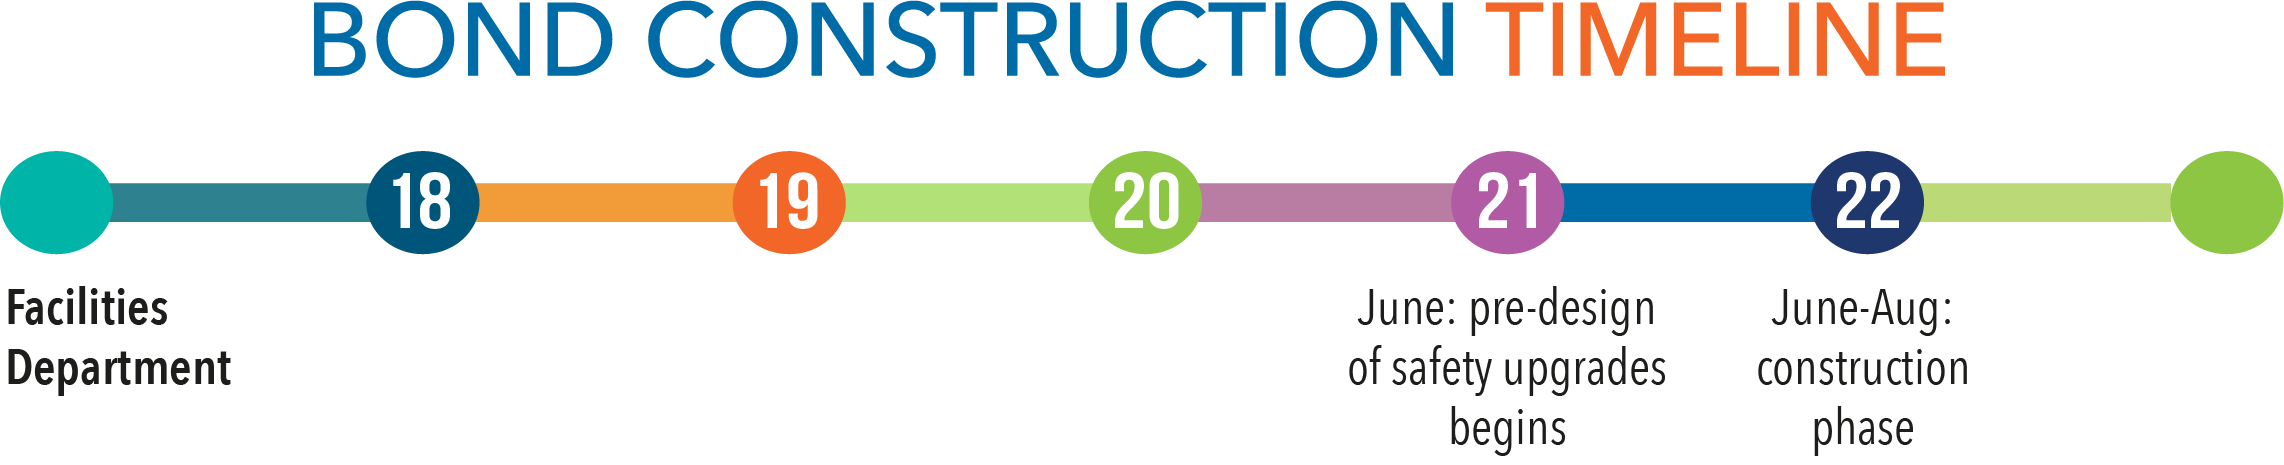 Bond construction timeline - Facilities